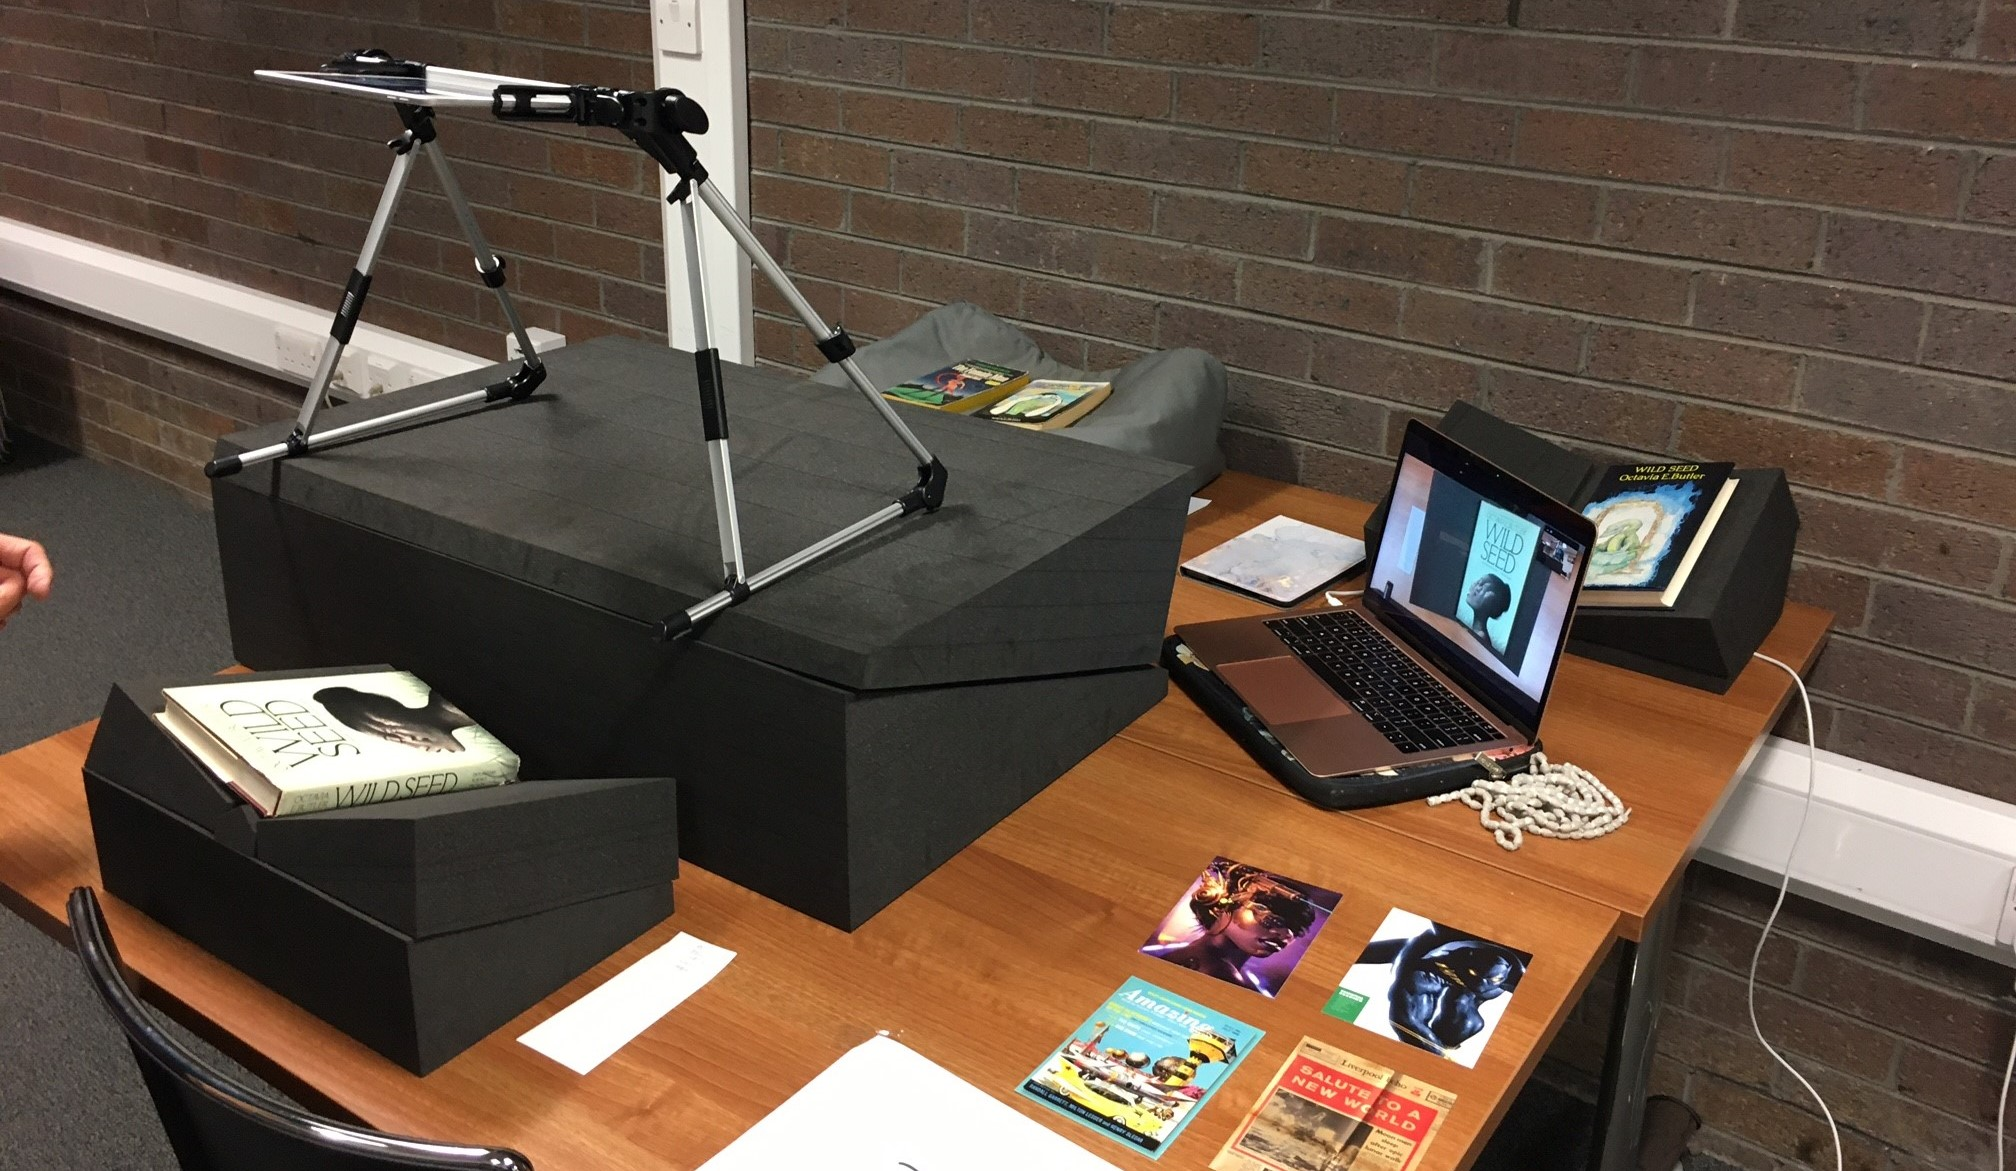 Teaching set up with books, iPad and laptop to stream collection items